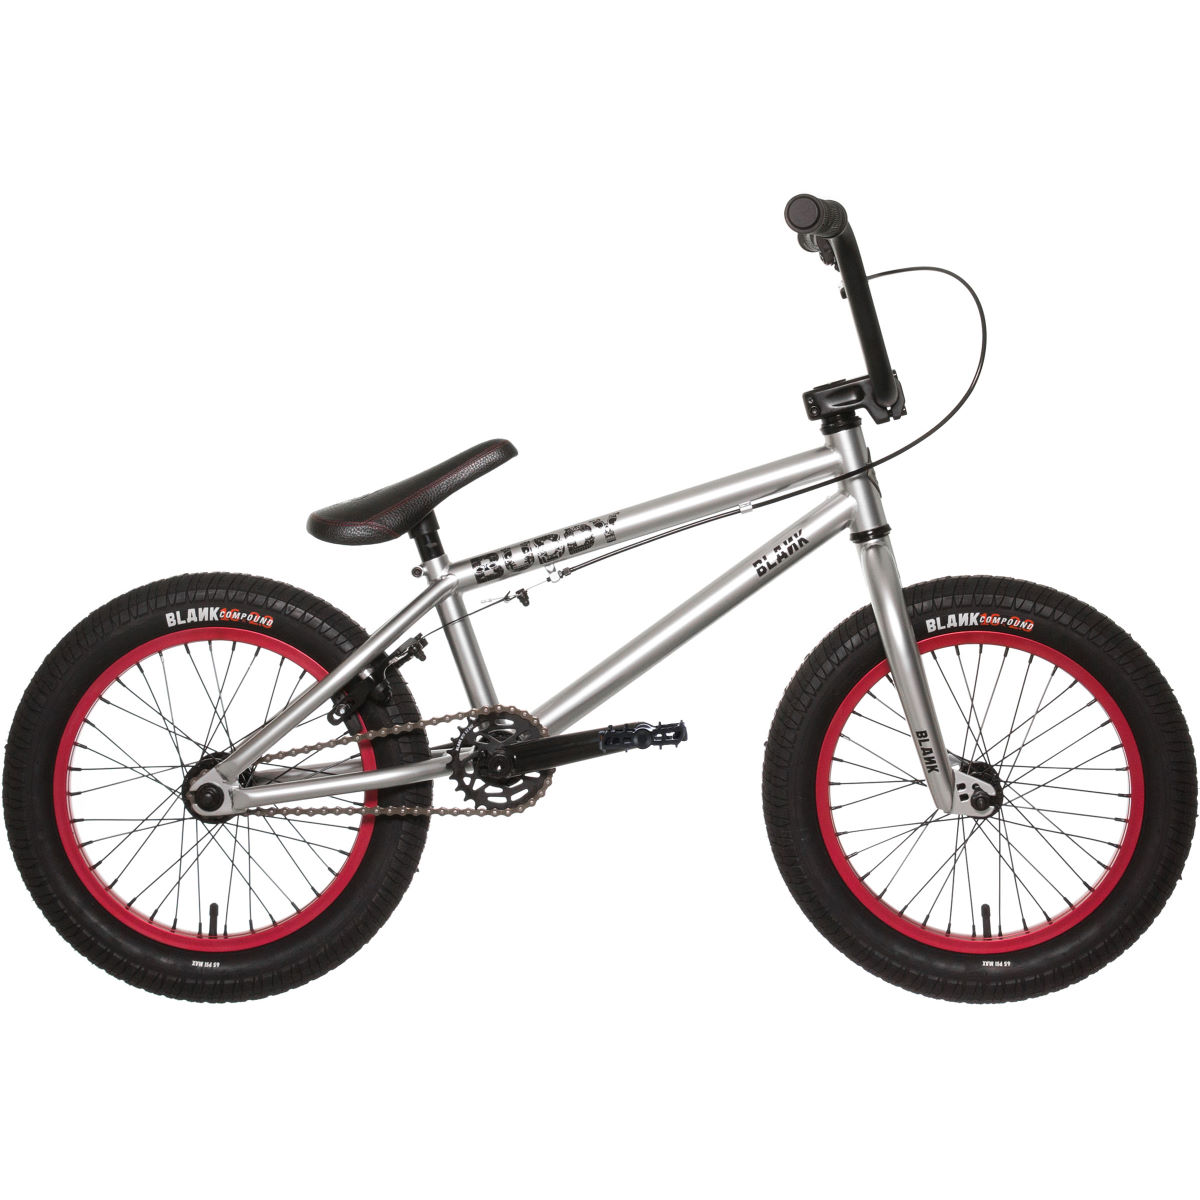 Blank Buddy BMX Bike (2019) - Bicicletas de BMX Freestyle